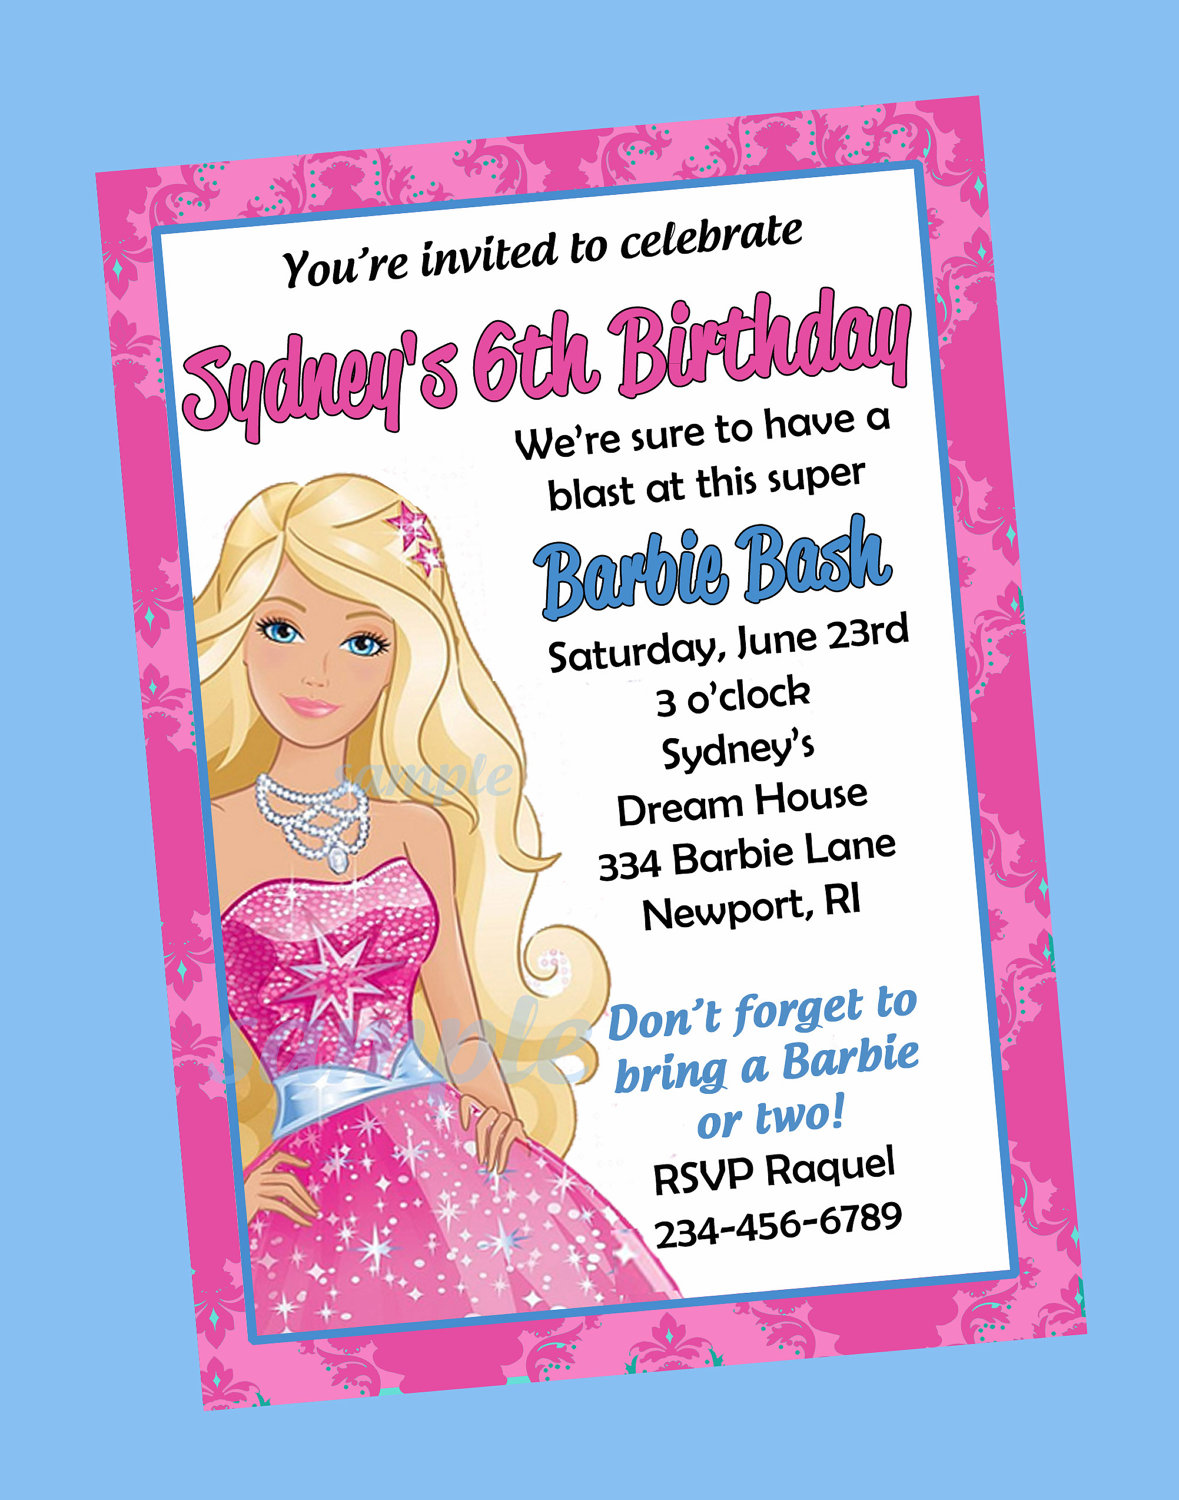 barbie theme birthday invitation card ; 0ed6bf36c05b5aa99f58780f62abc141